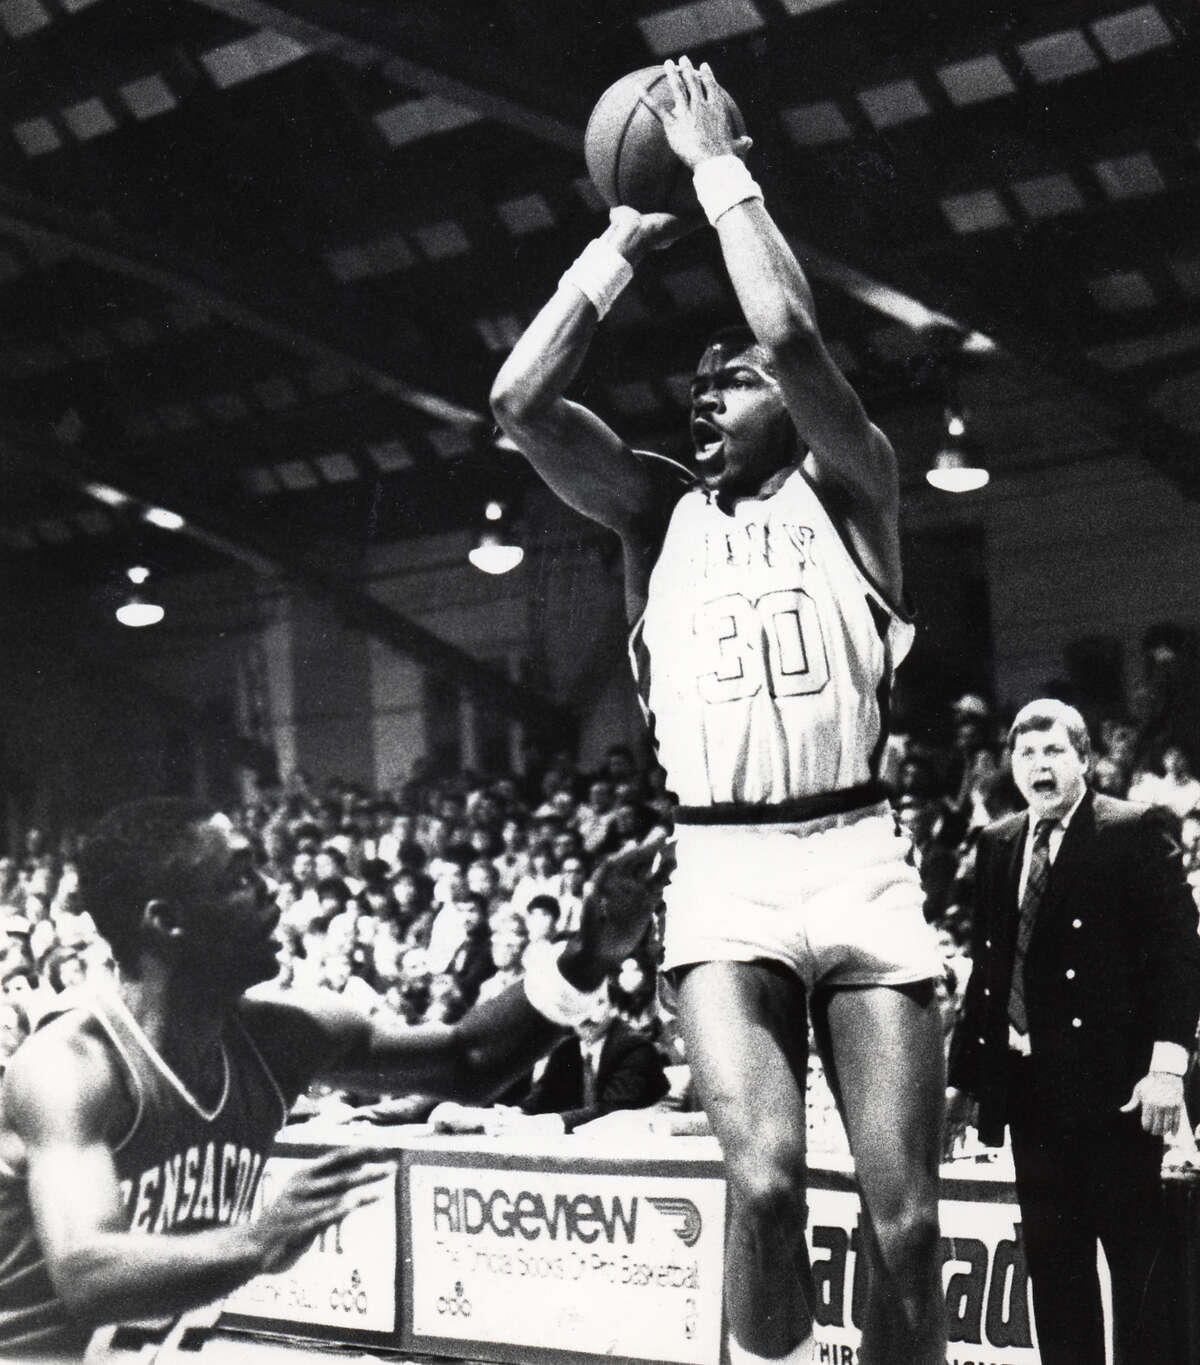 Albany Patroon's Derrick Rowland goes up for a jump shot during a game at the Albany Armory on April 8, 1988. Pensacola coach is yelling in background. (Times Union archive)